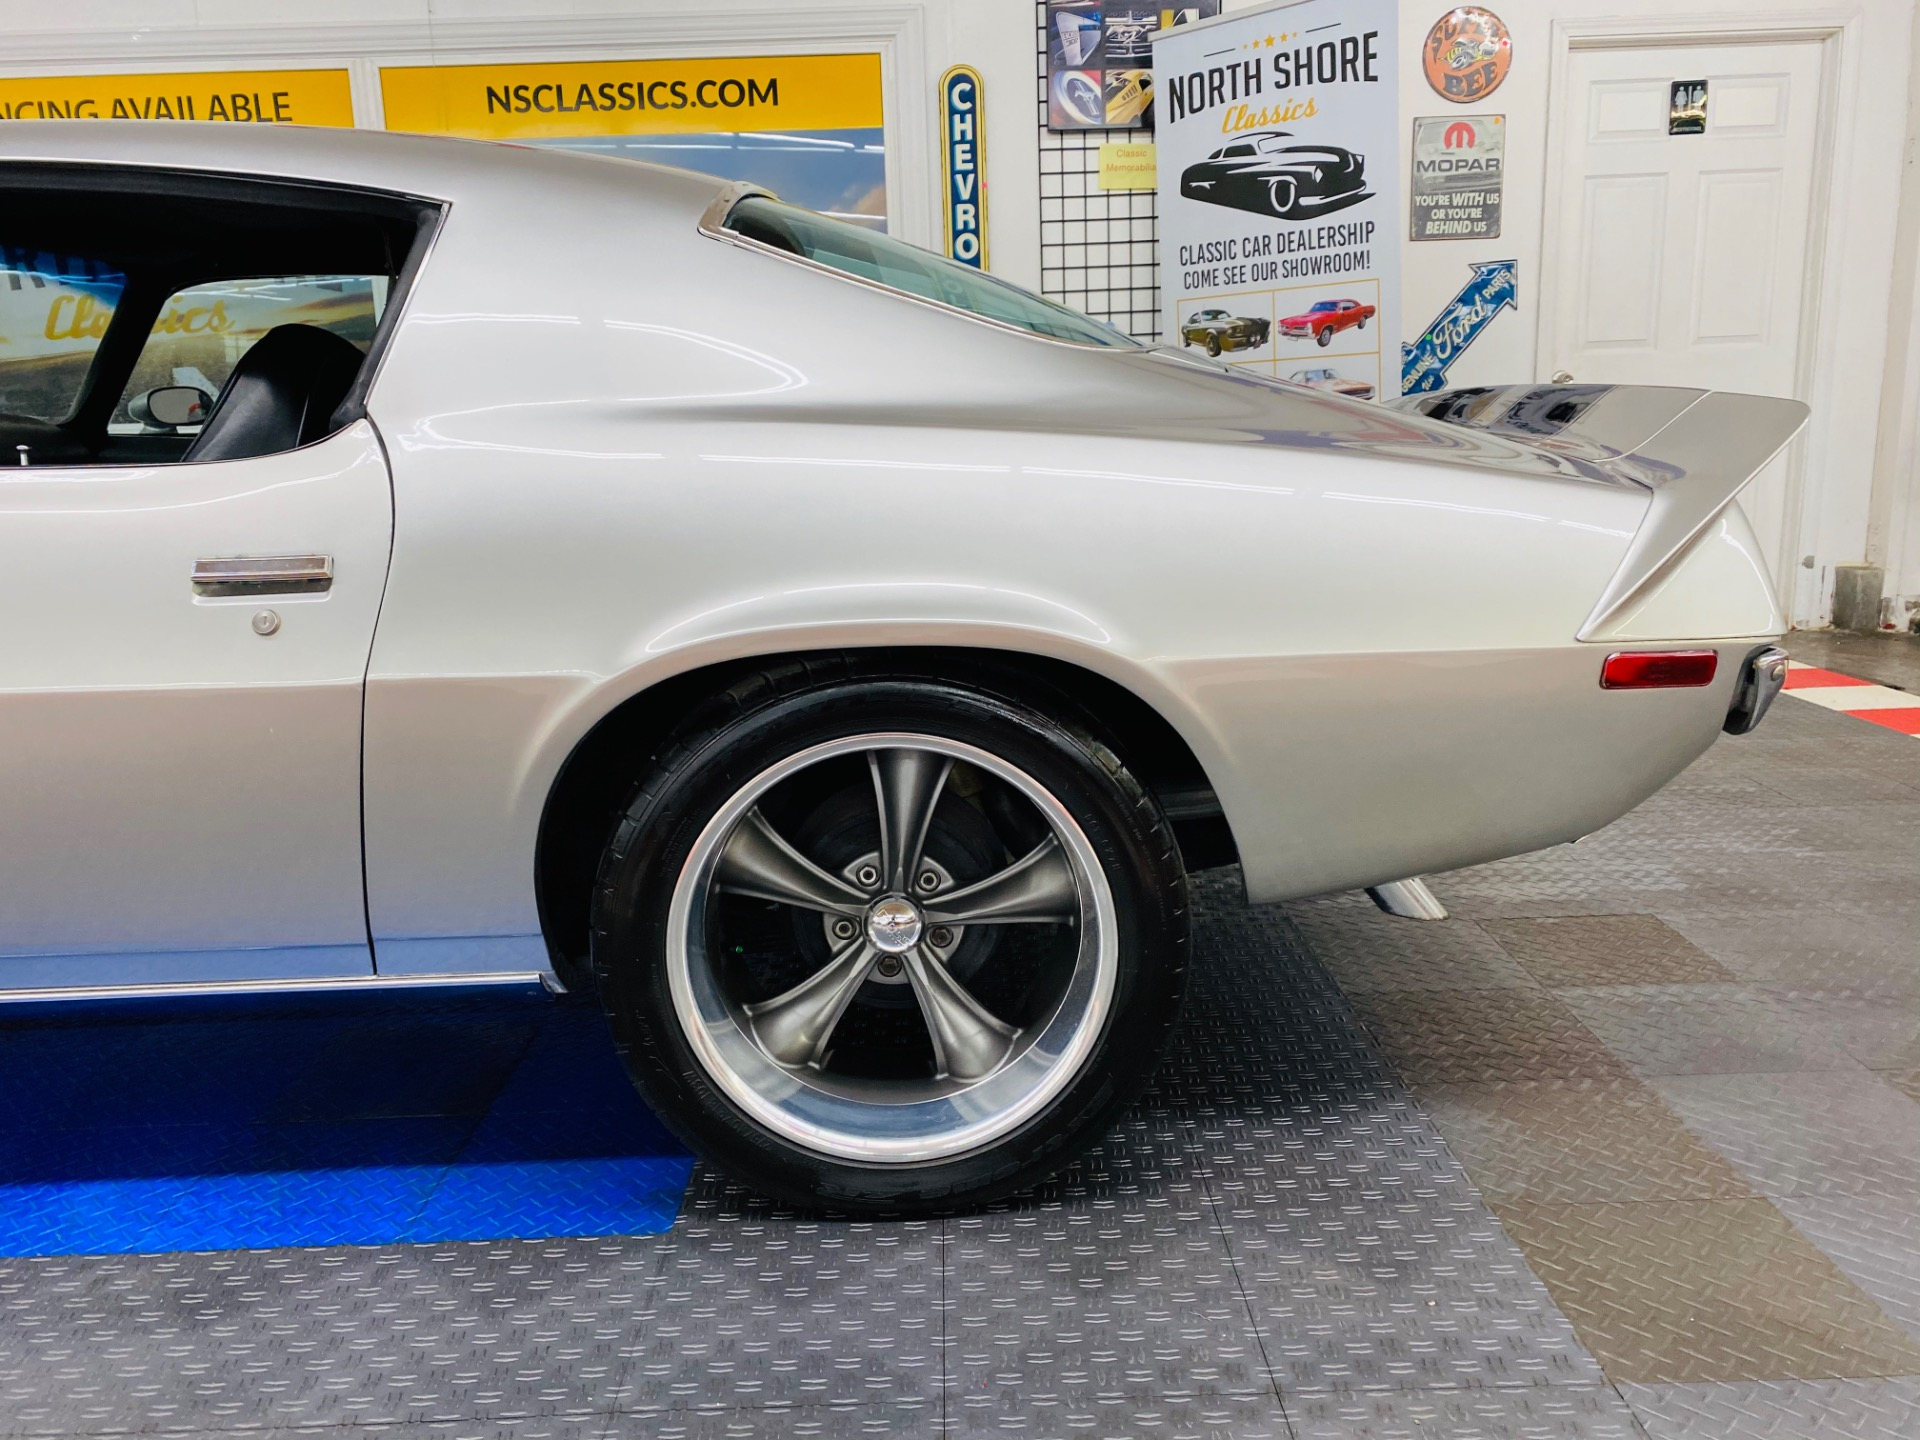 Used 1972 Chevrolet Camaro -SUPER SPORT TRIBUTE - 350 ENGINE - FACTORY A/C - SEE VIDEO - | Mundelein, IL